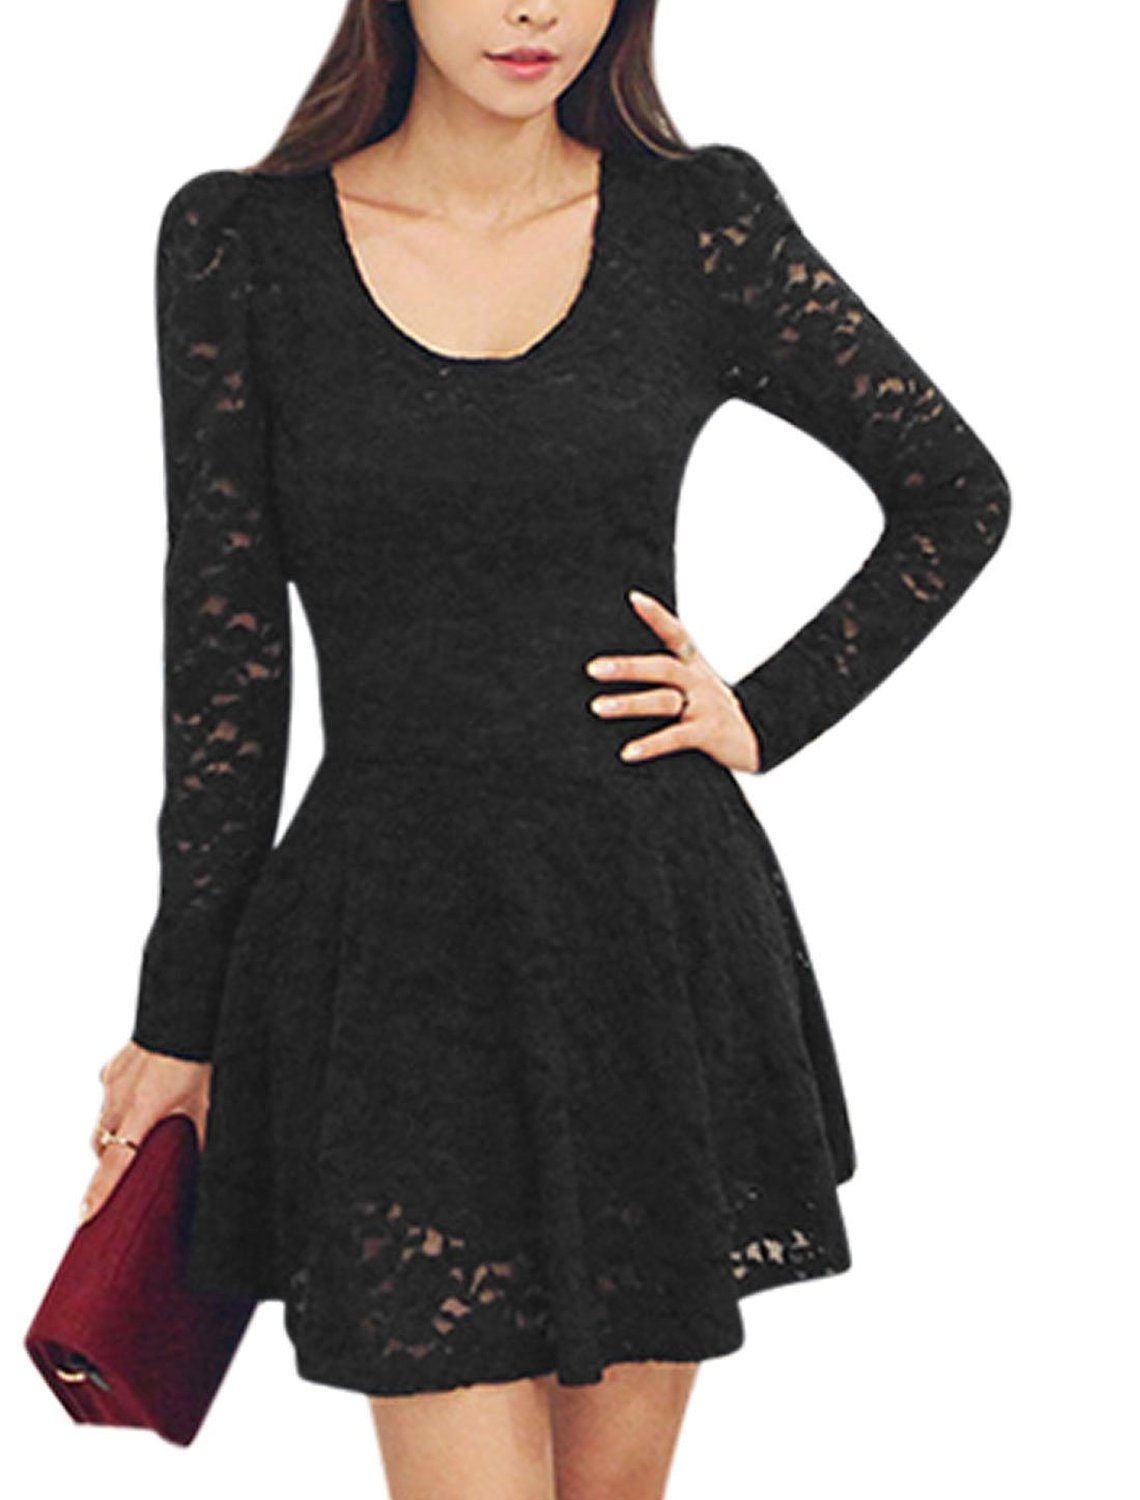 Scoop neck long sleeves casual lace skater dress for women at amazon women's clothing store: